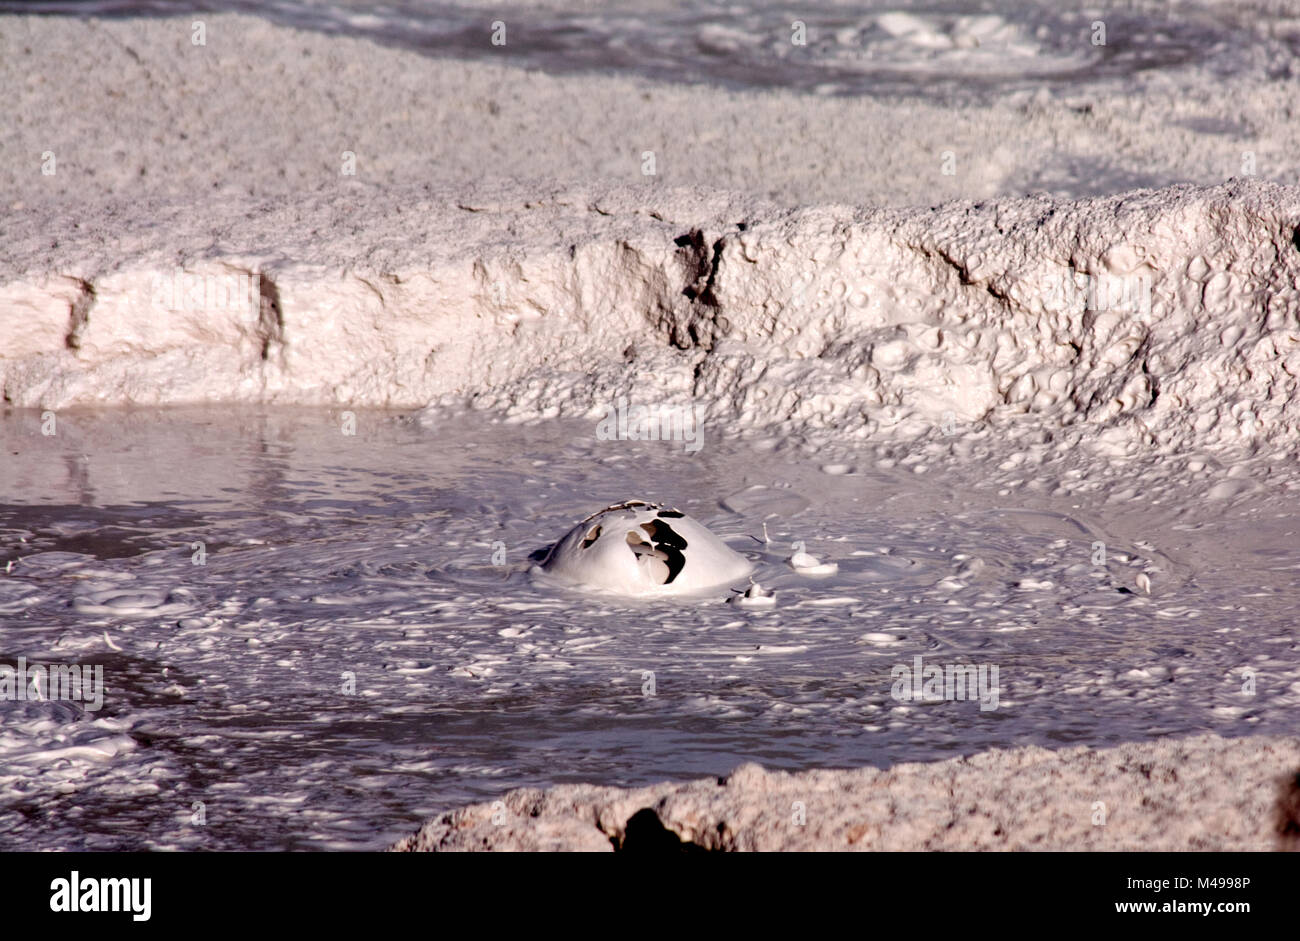 Bursting bubbles of mud, Fountain Paint Pots Trail, Yellowstone National Park, USA - Stock Image